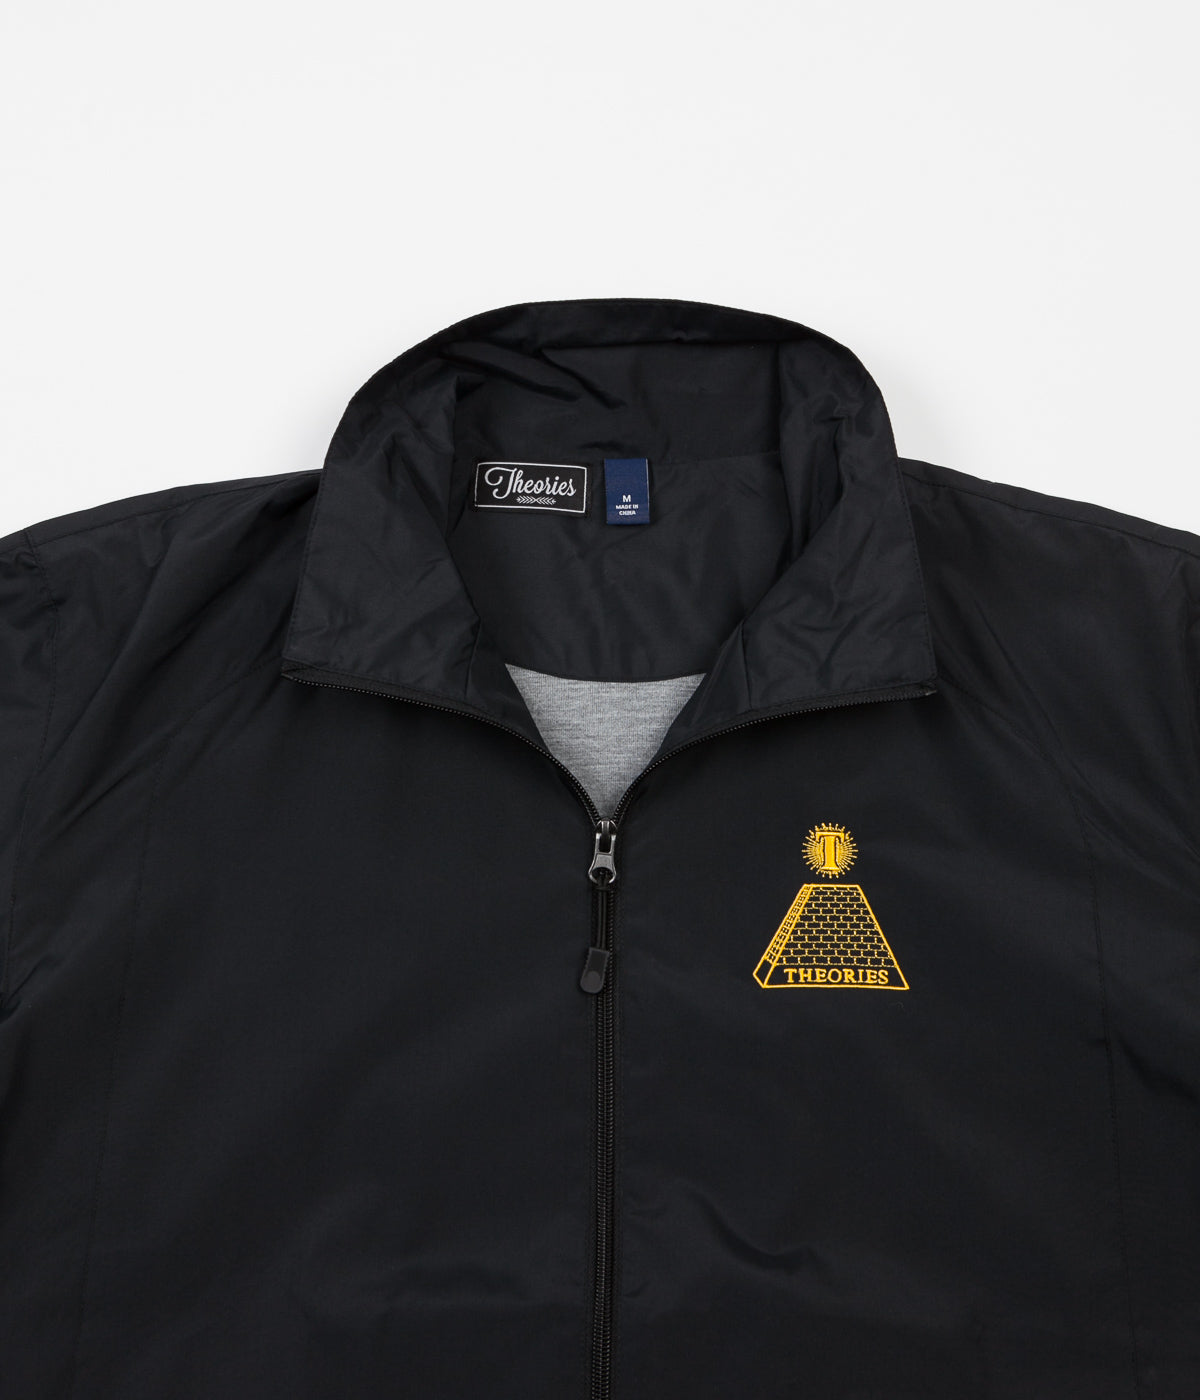 Theories of Atlantis Theoramid Jacket - Black / Gold